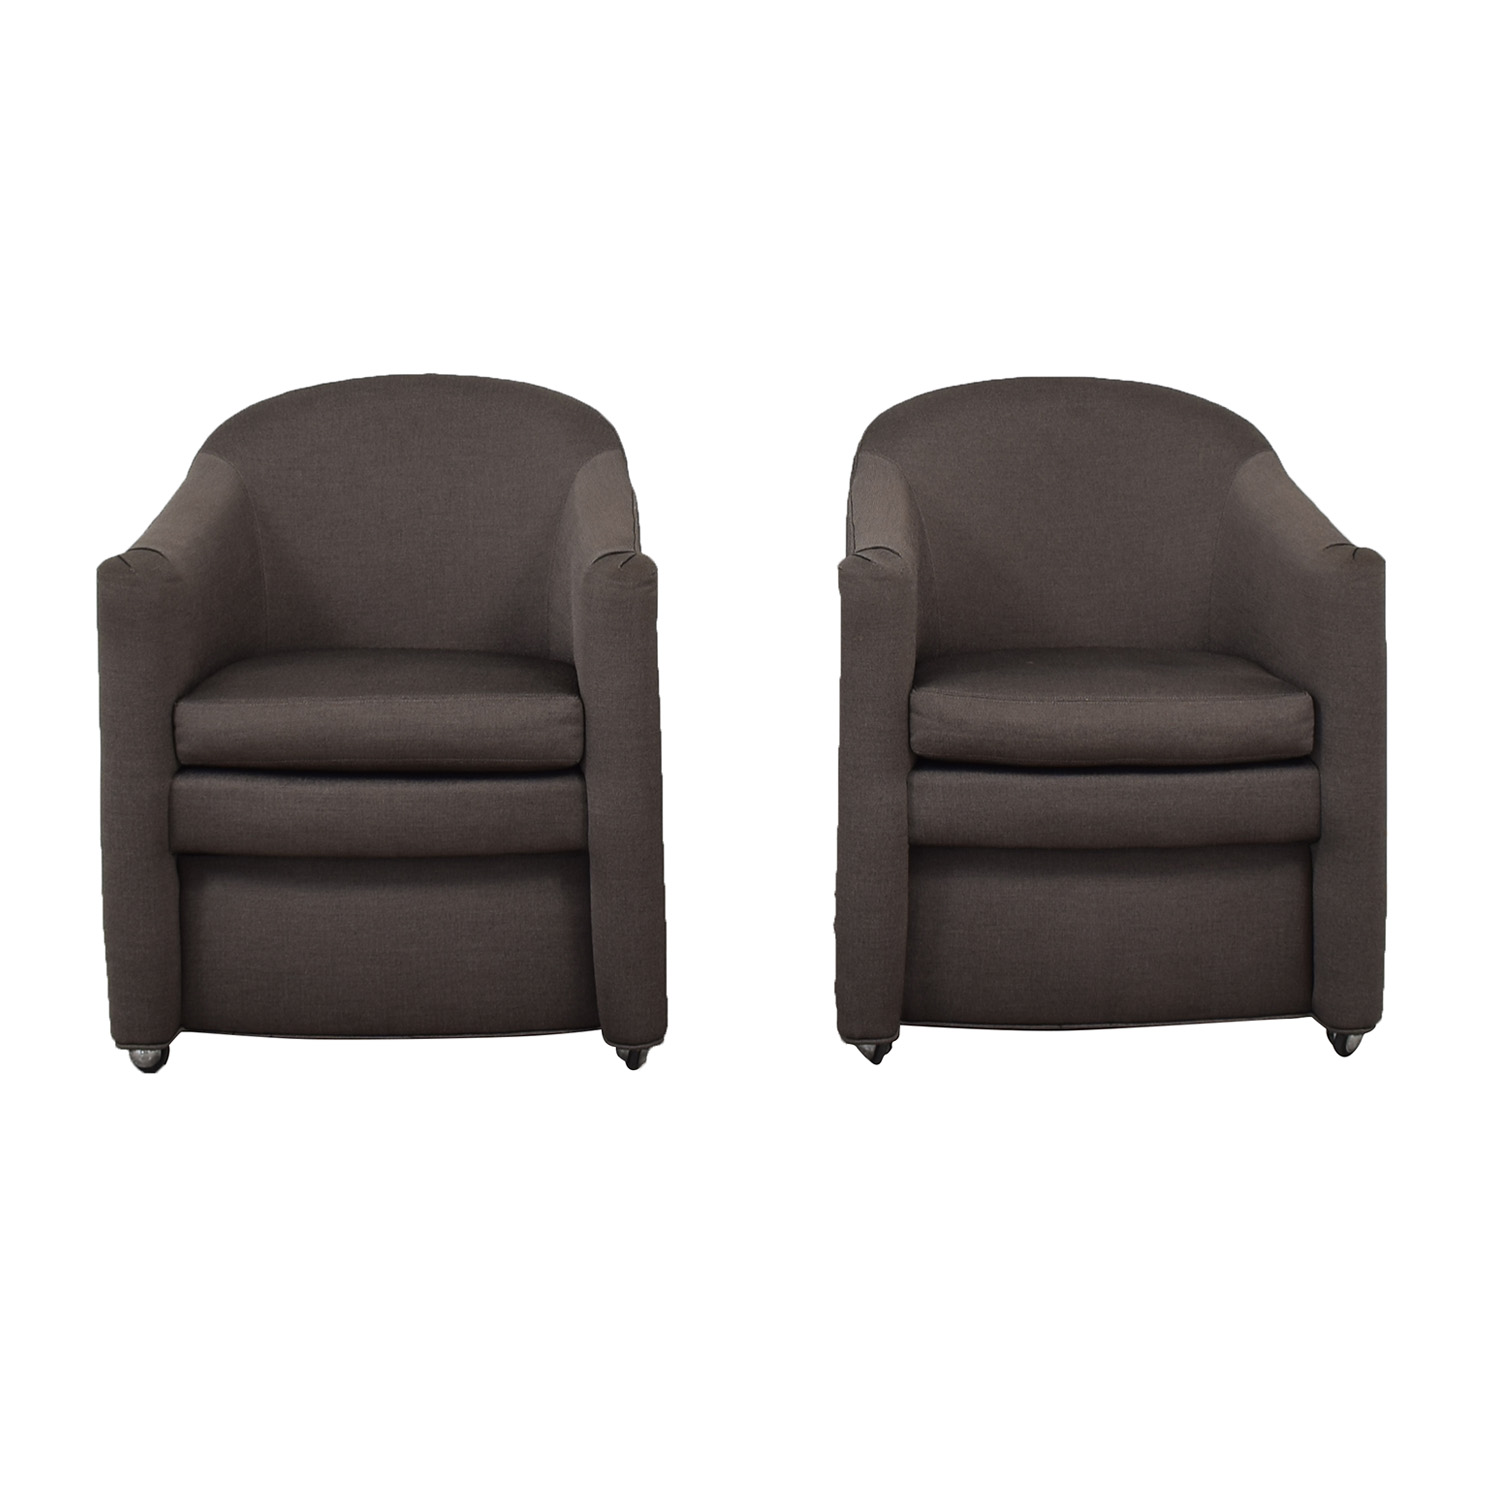 shop Kravet Grey Wianno Accent Chairs Kravet Accent Chairs